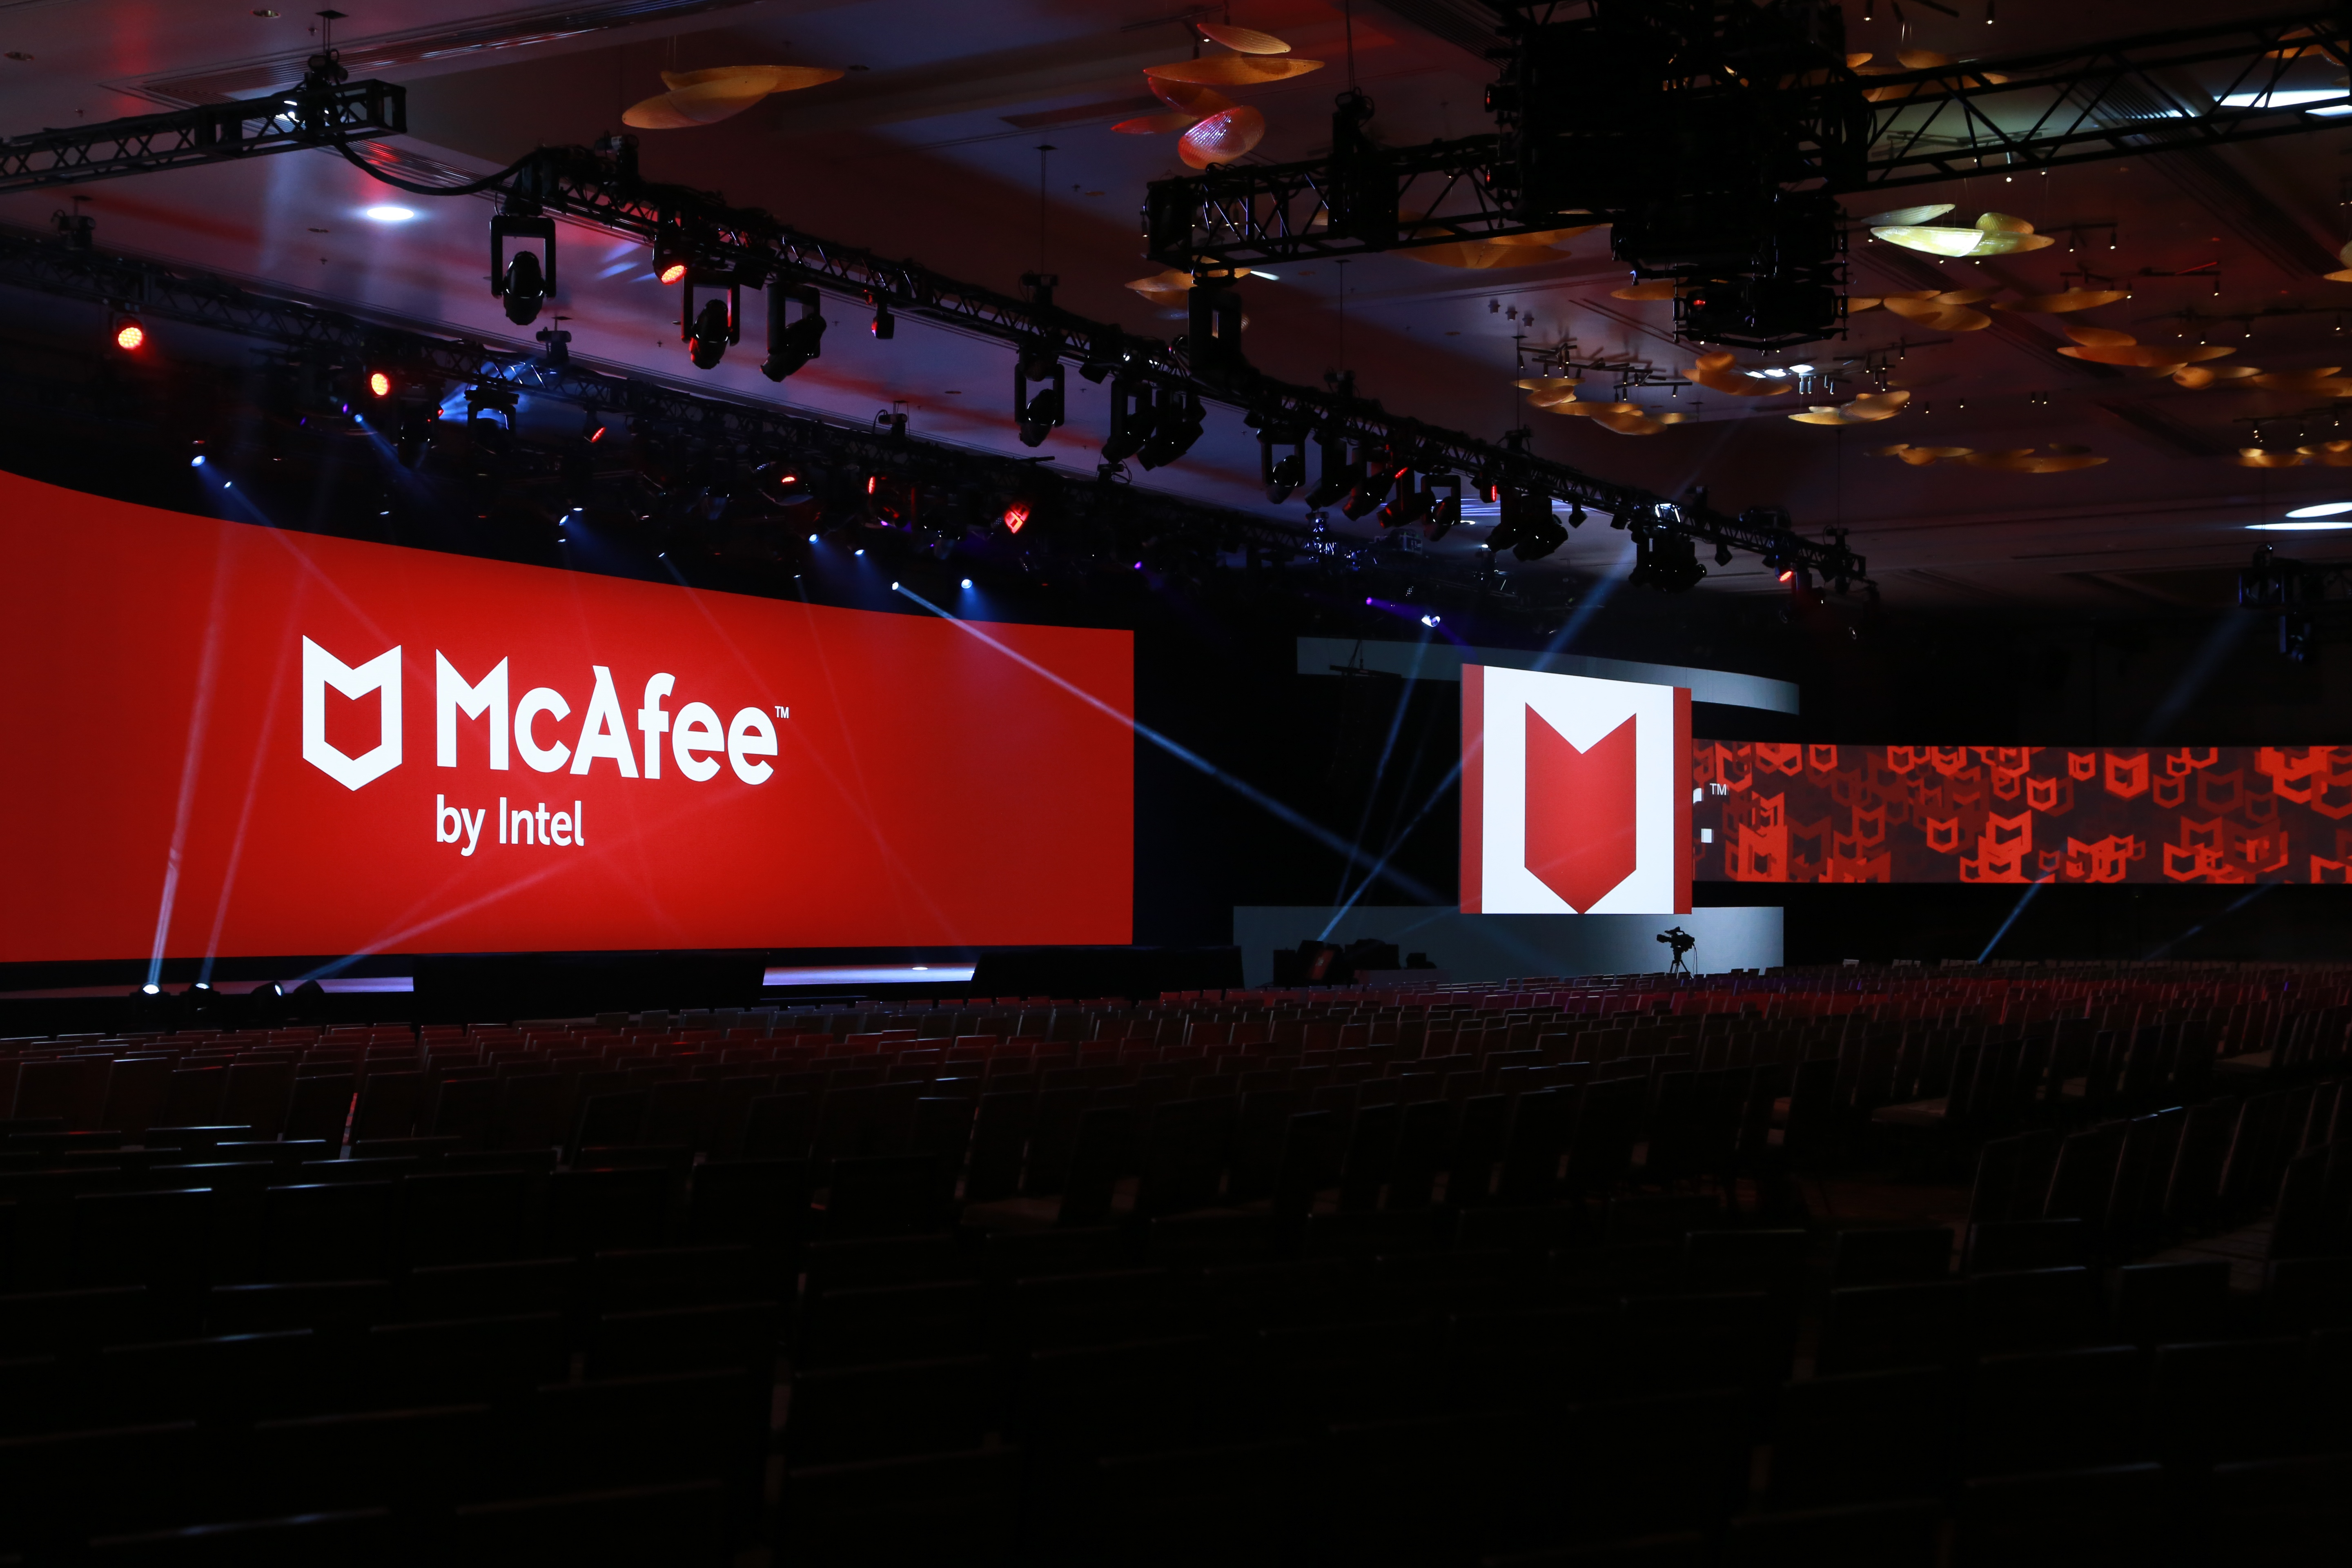 McAfee by Intel.jpg